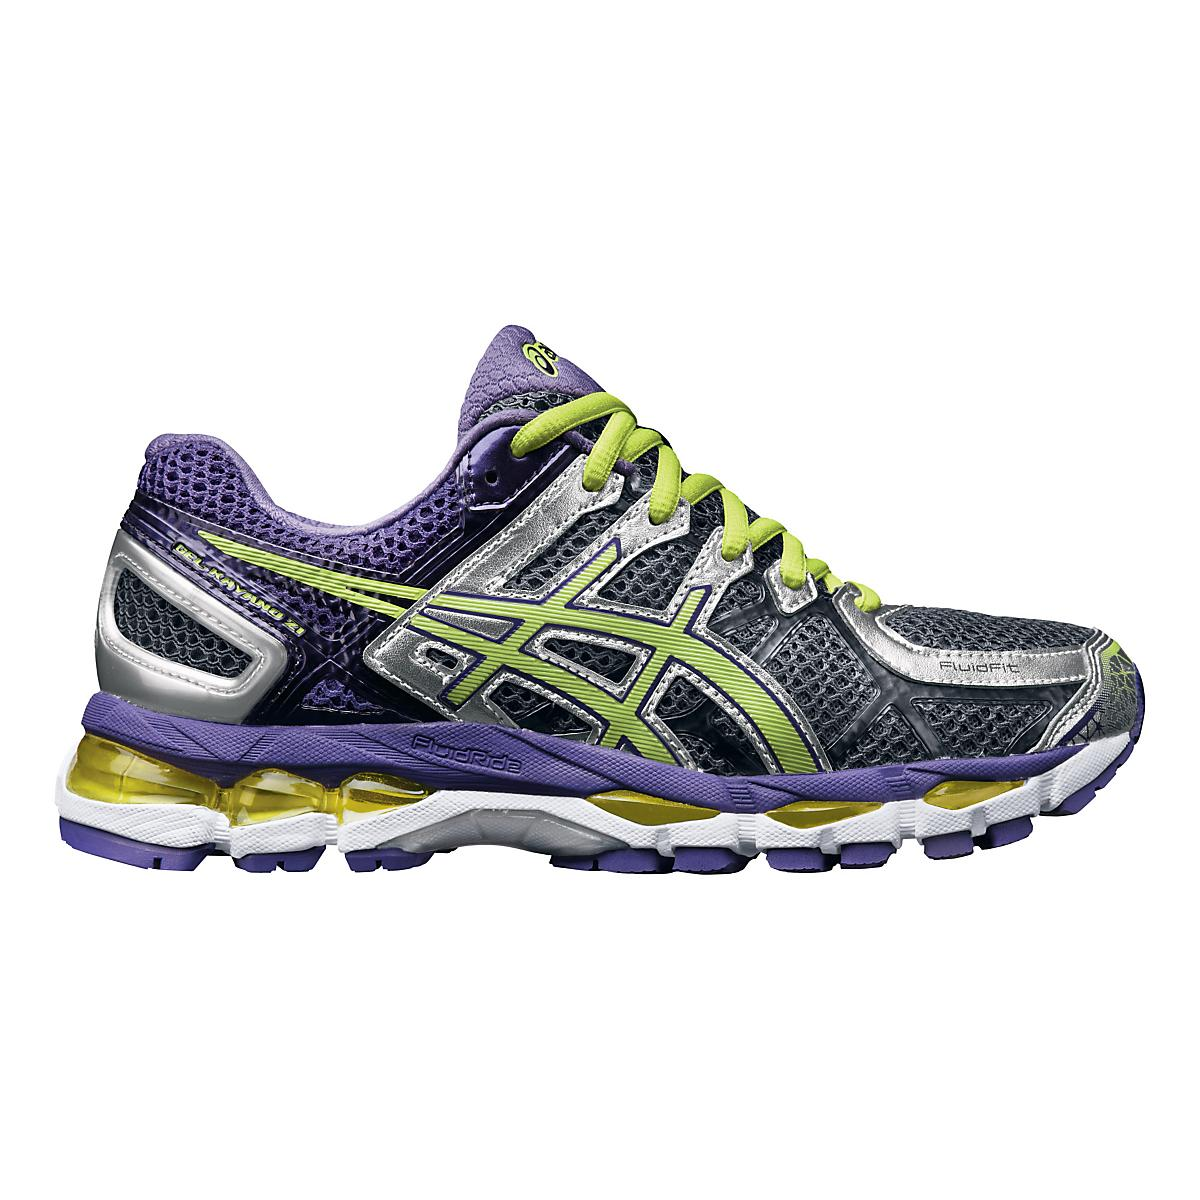 30619681074d Womens ASICS GEL-Kayano 21 Running Shoe at Road Runner Sports